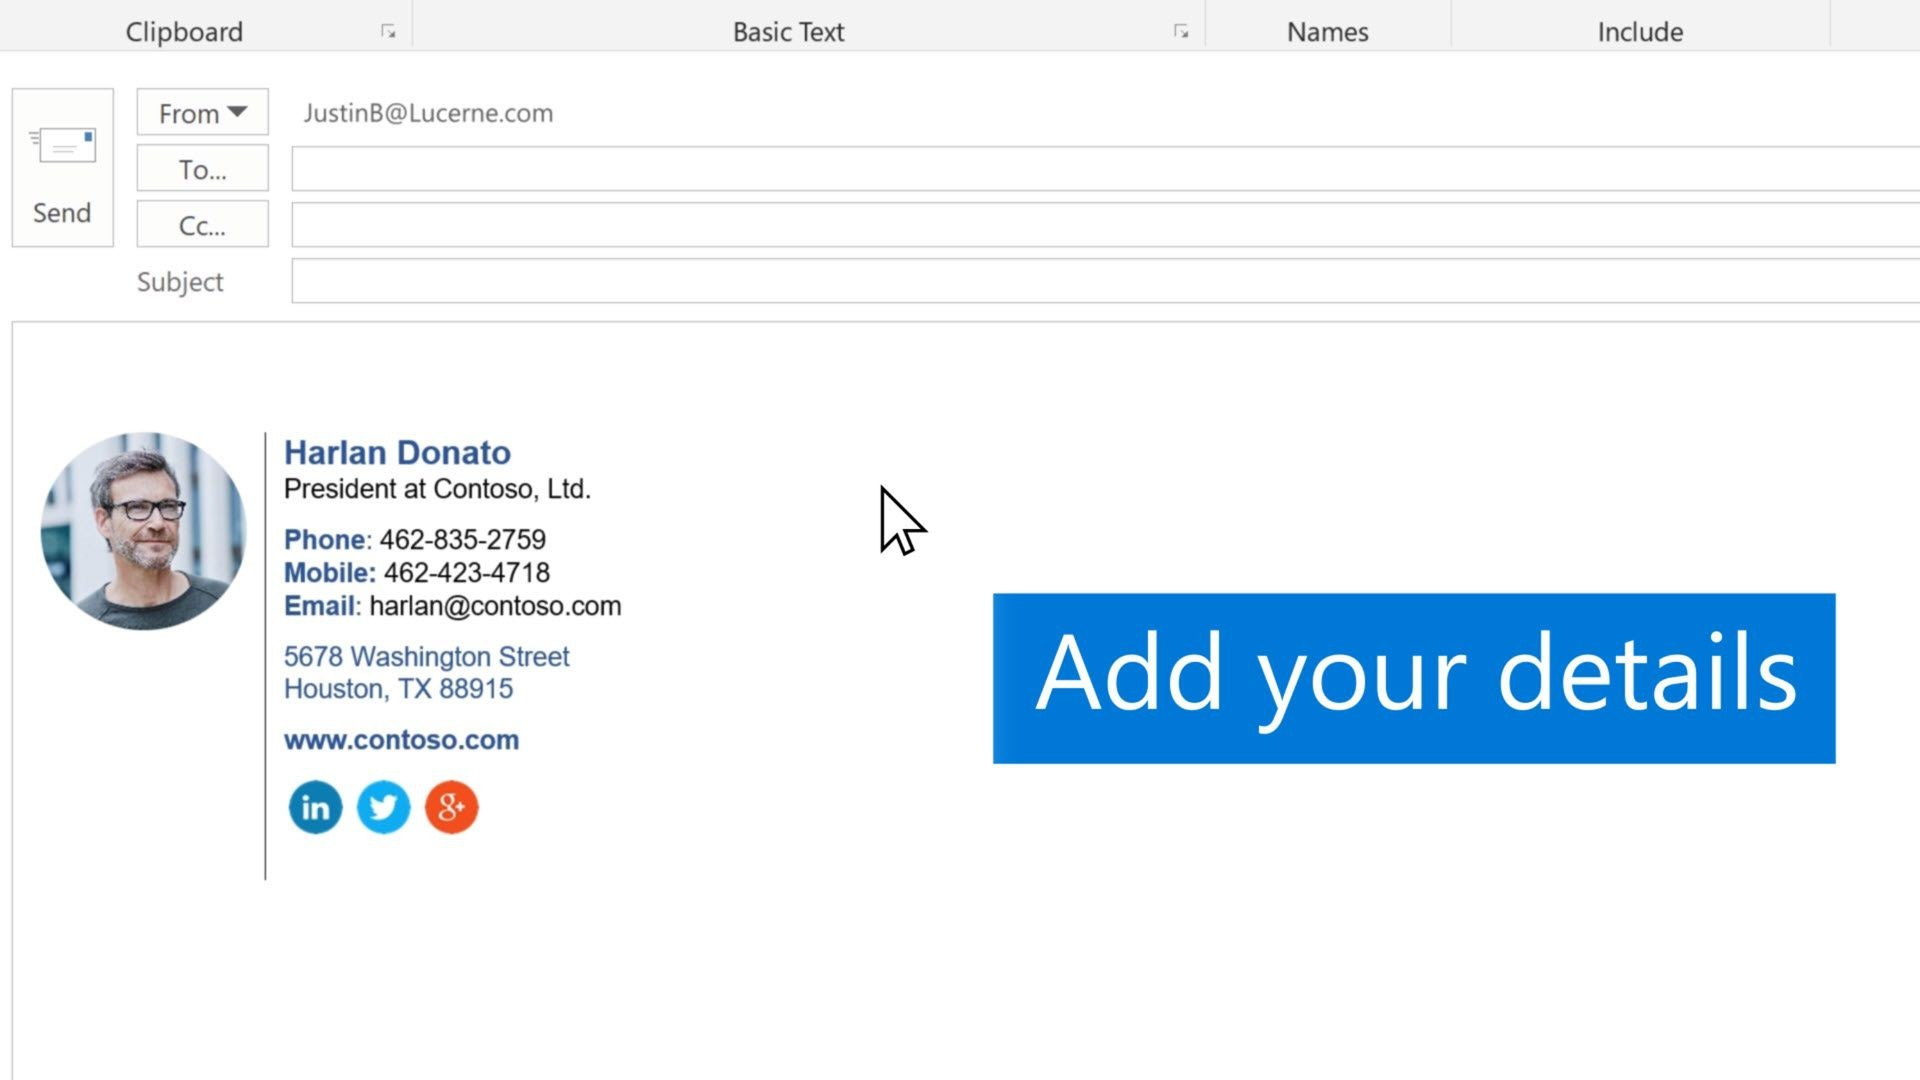 010 Fantastic Outlook Email Signature Template Example  Examples1920